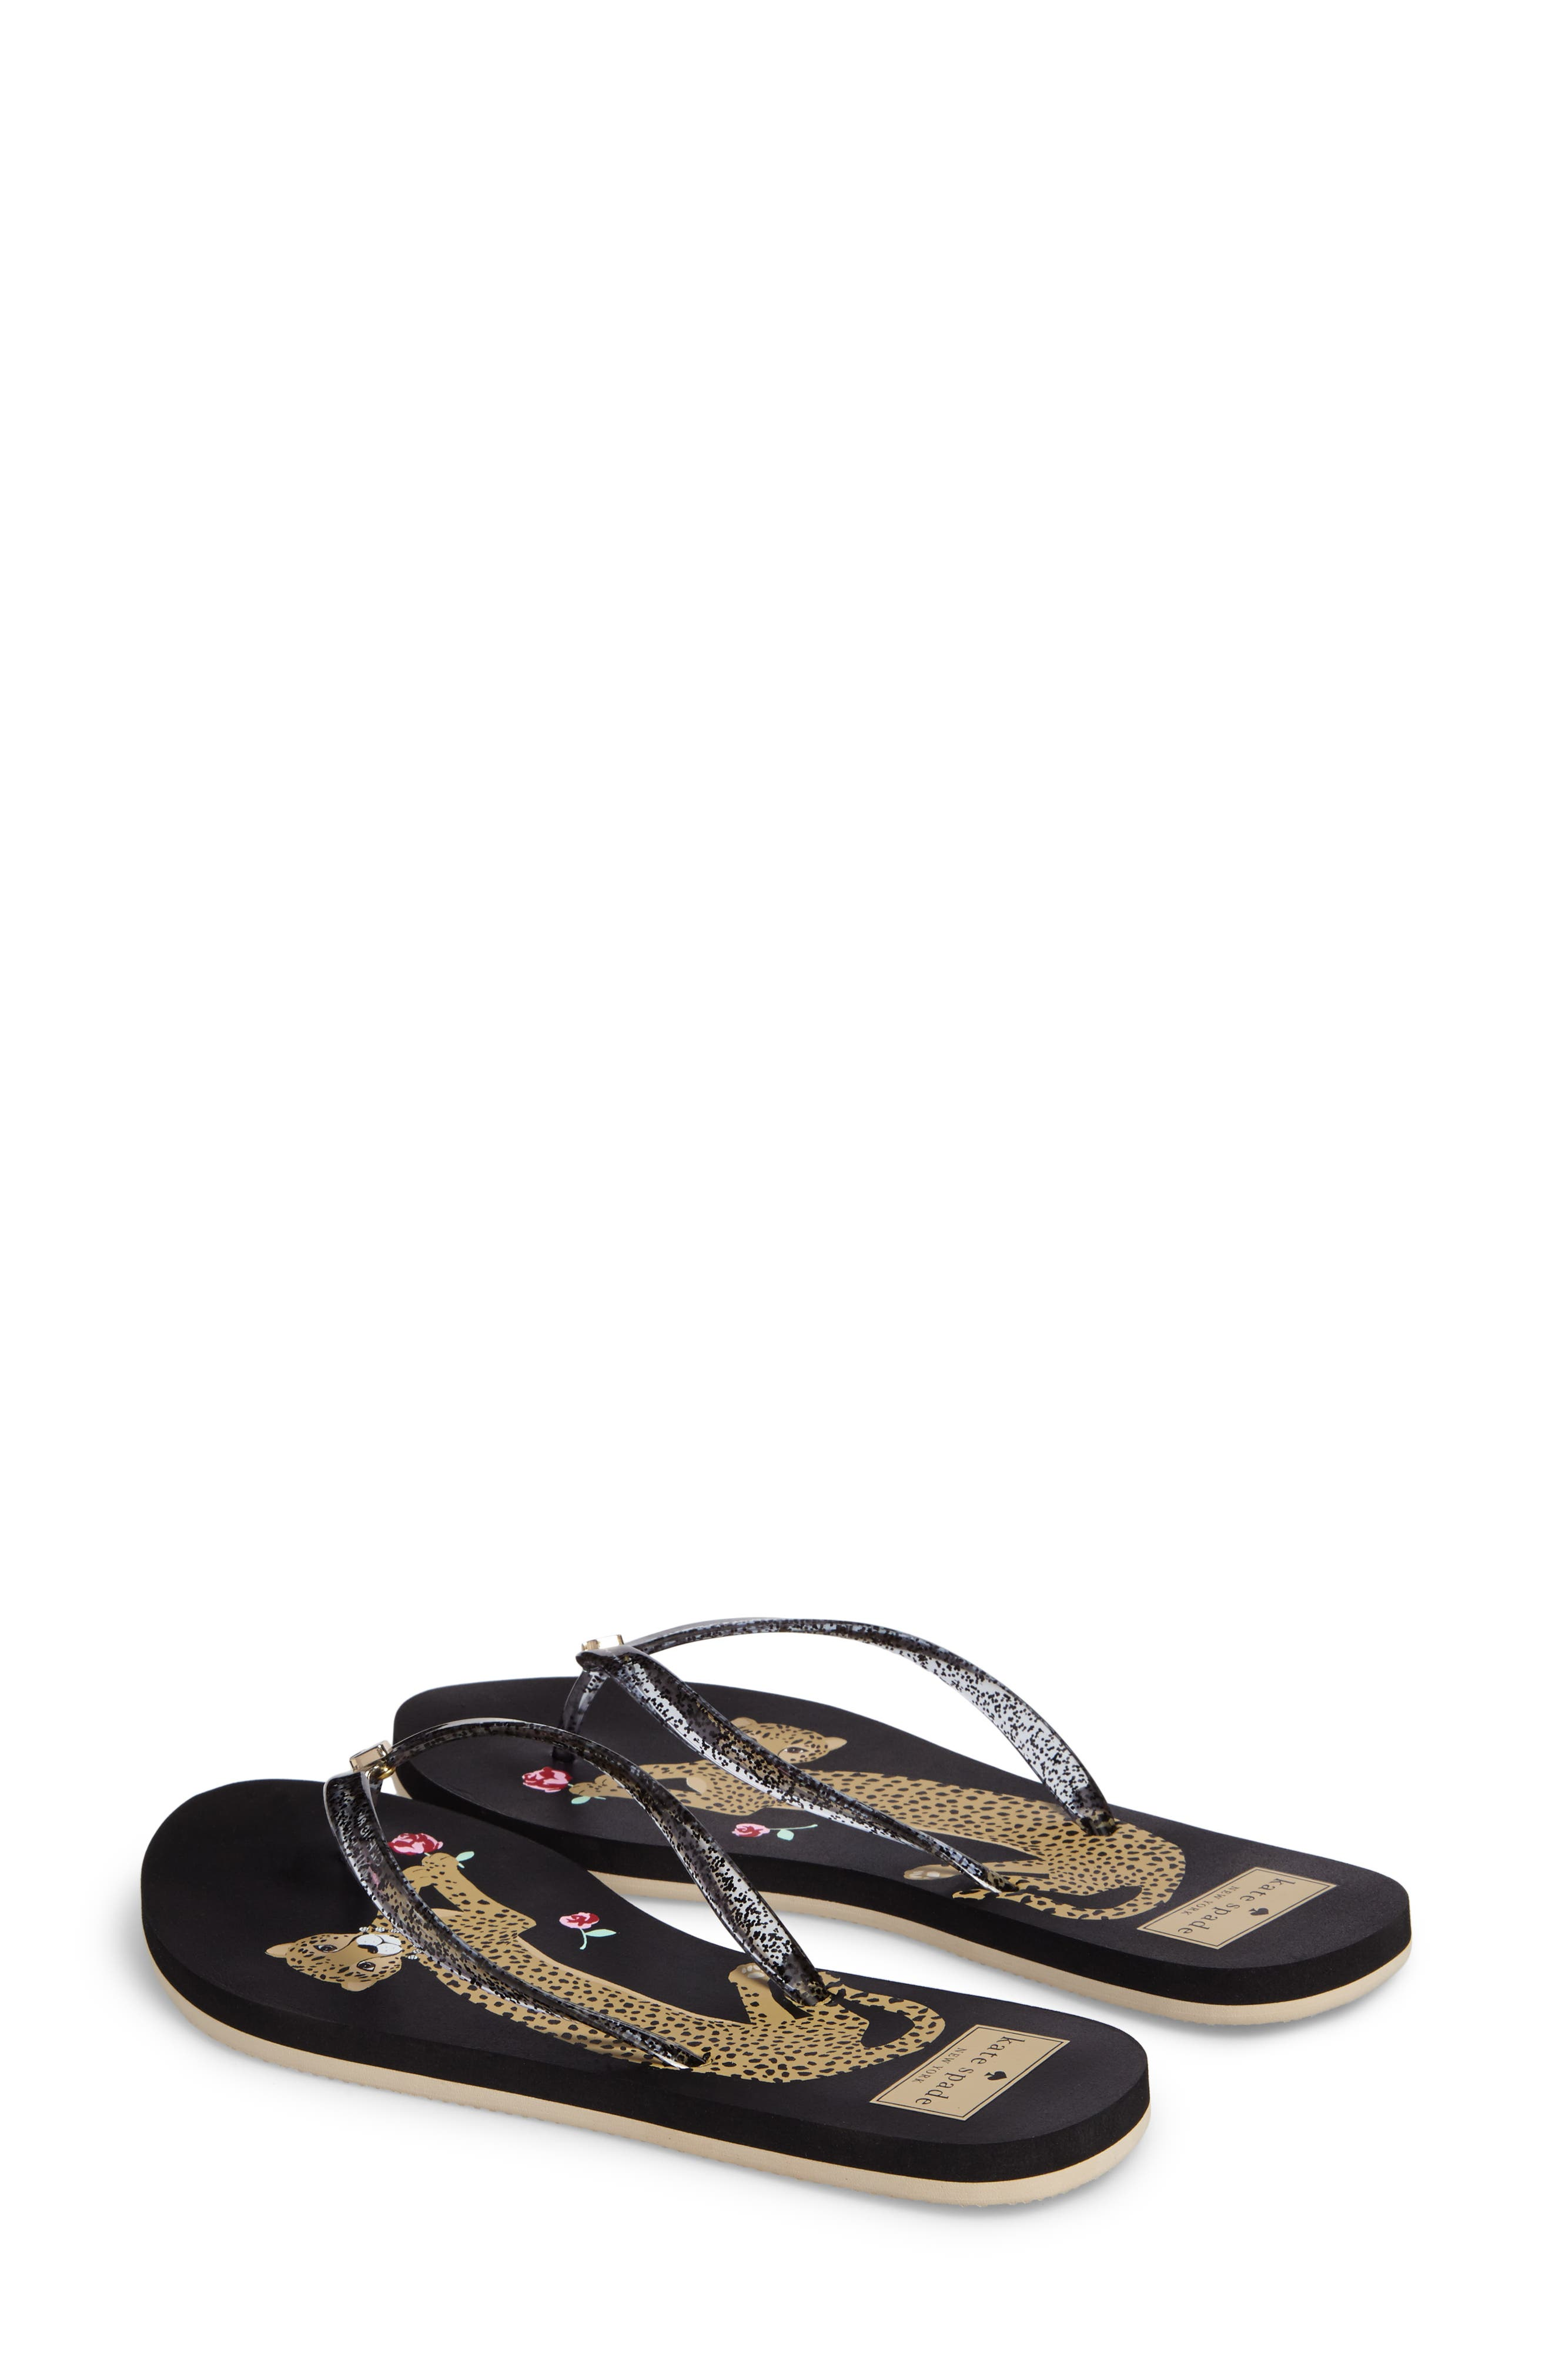 Alternate Image 2  - kate spade new york 'nassau' flip flop (Women)